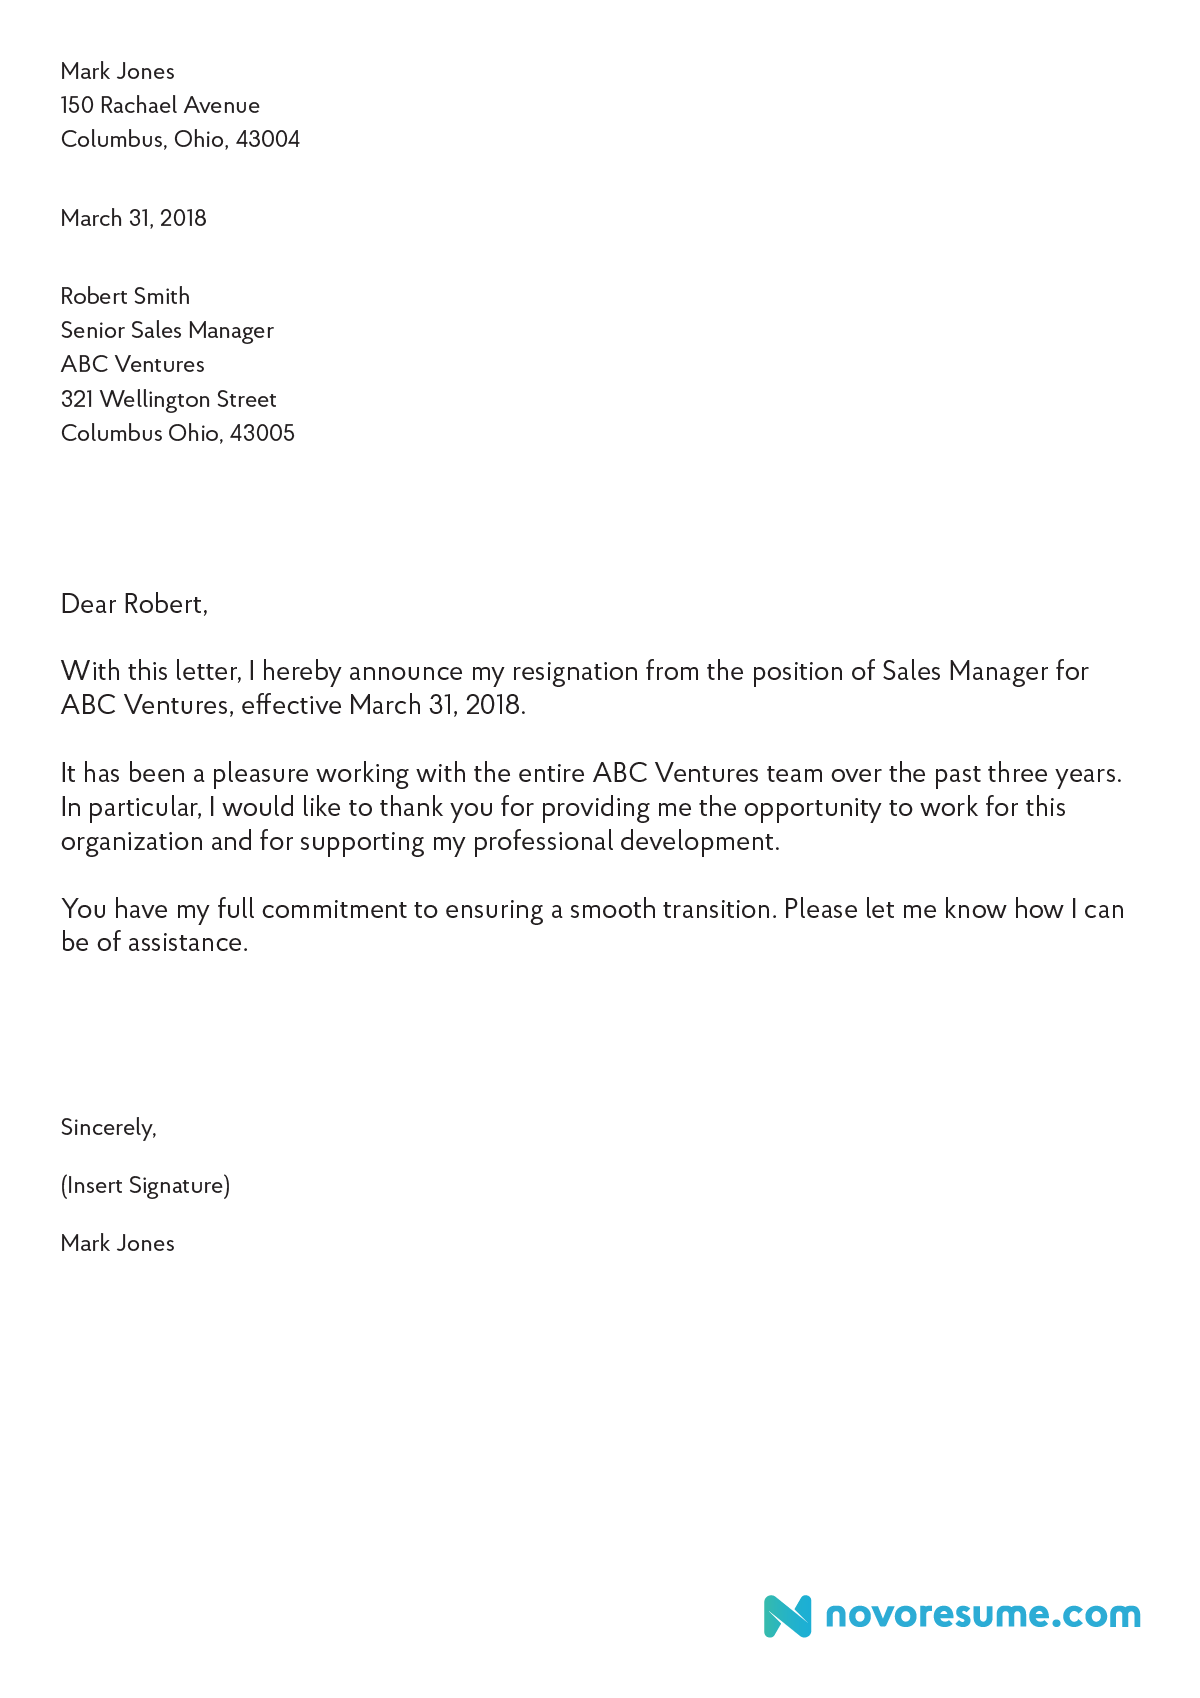 Professional Letter Of Resignation Template from flood-rescue.com